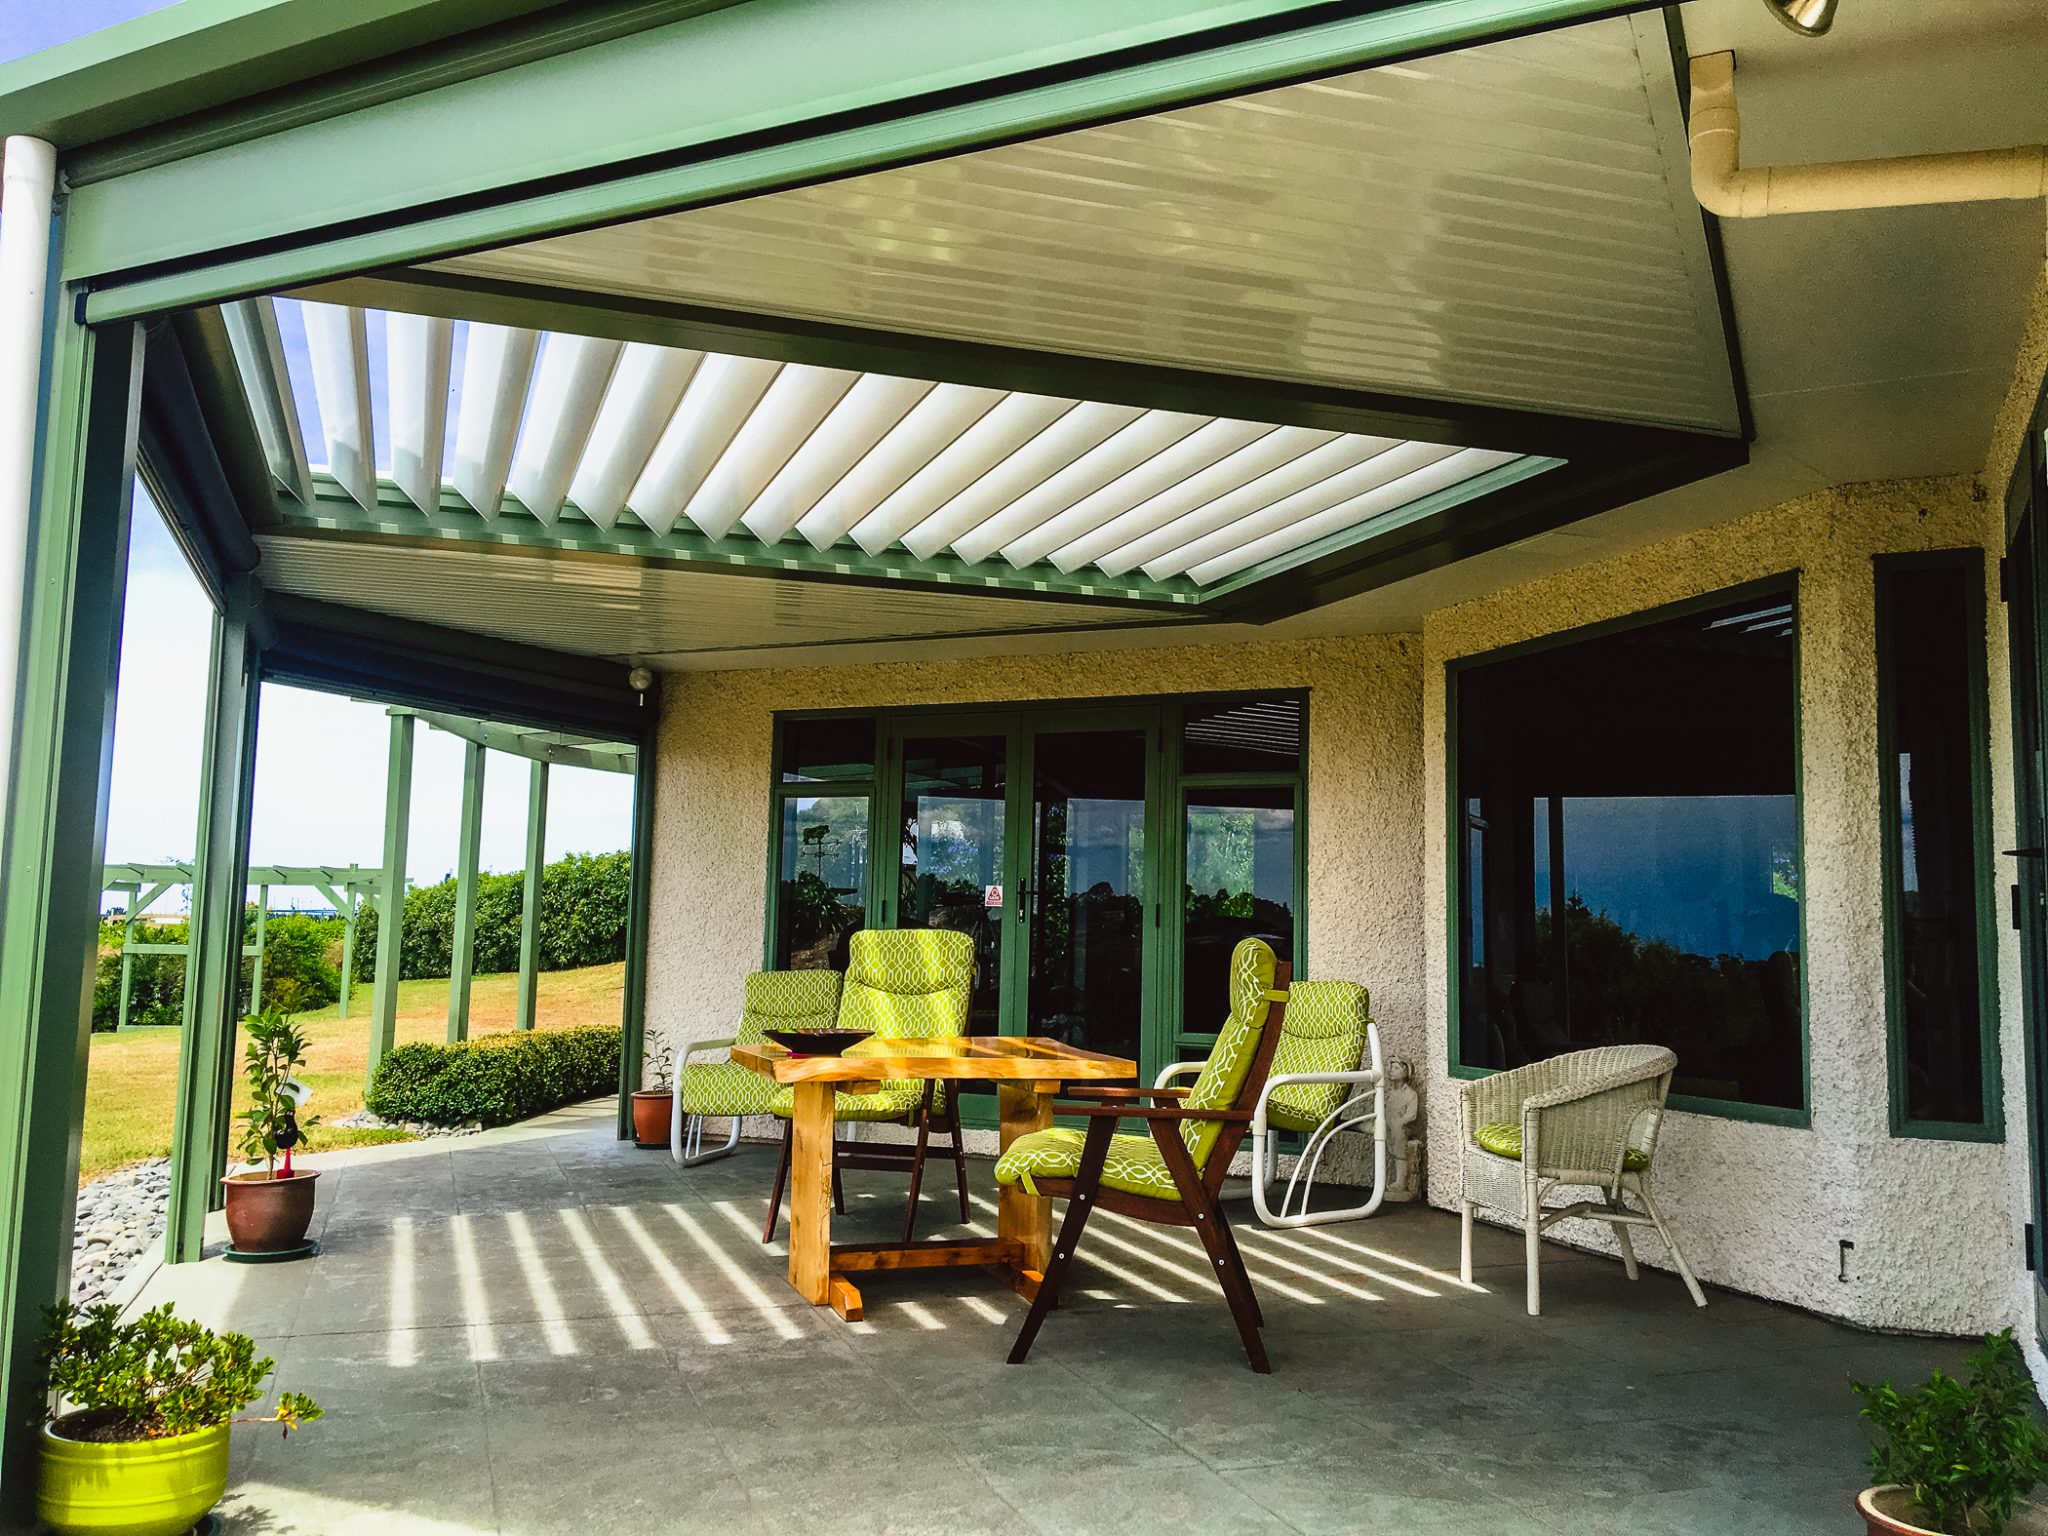 louvre roof surrounded by flat patio roof with louvre blades open and a dark green frame in hawkes bay, new zealand